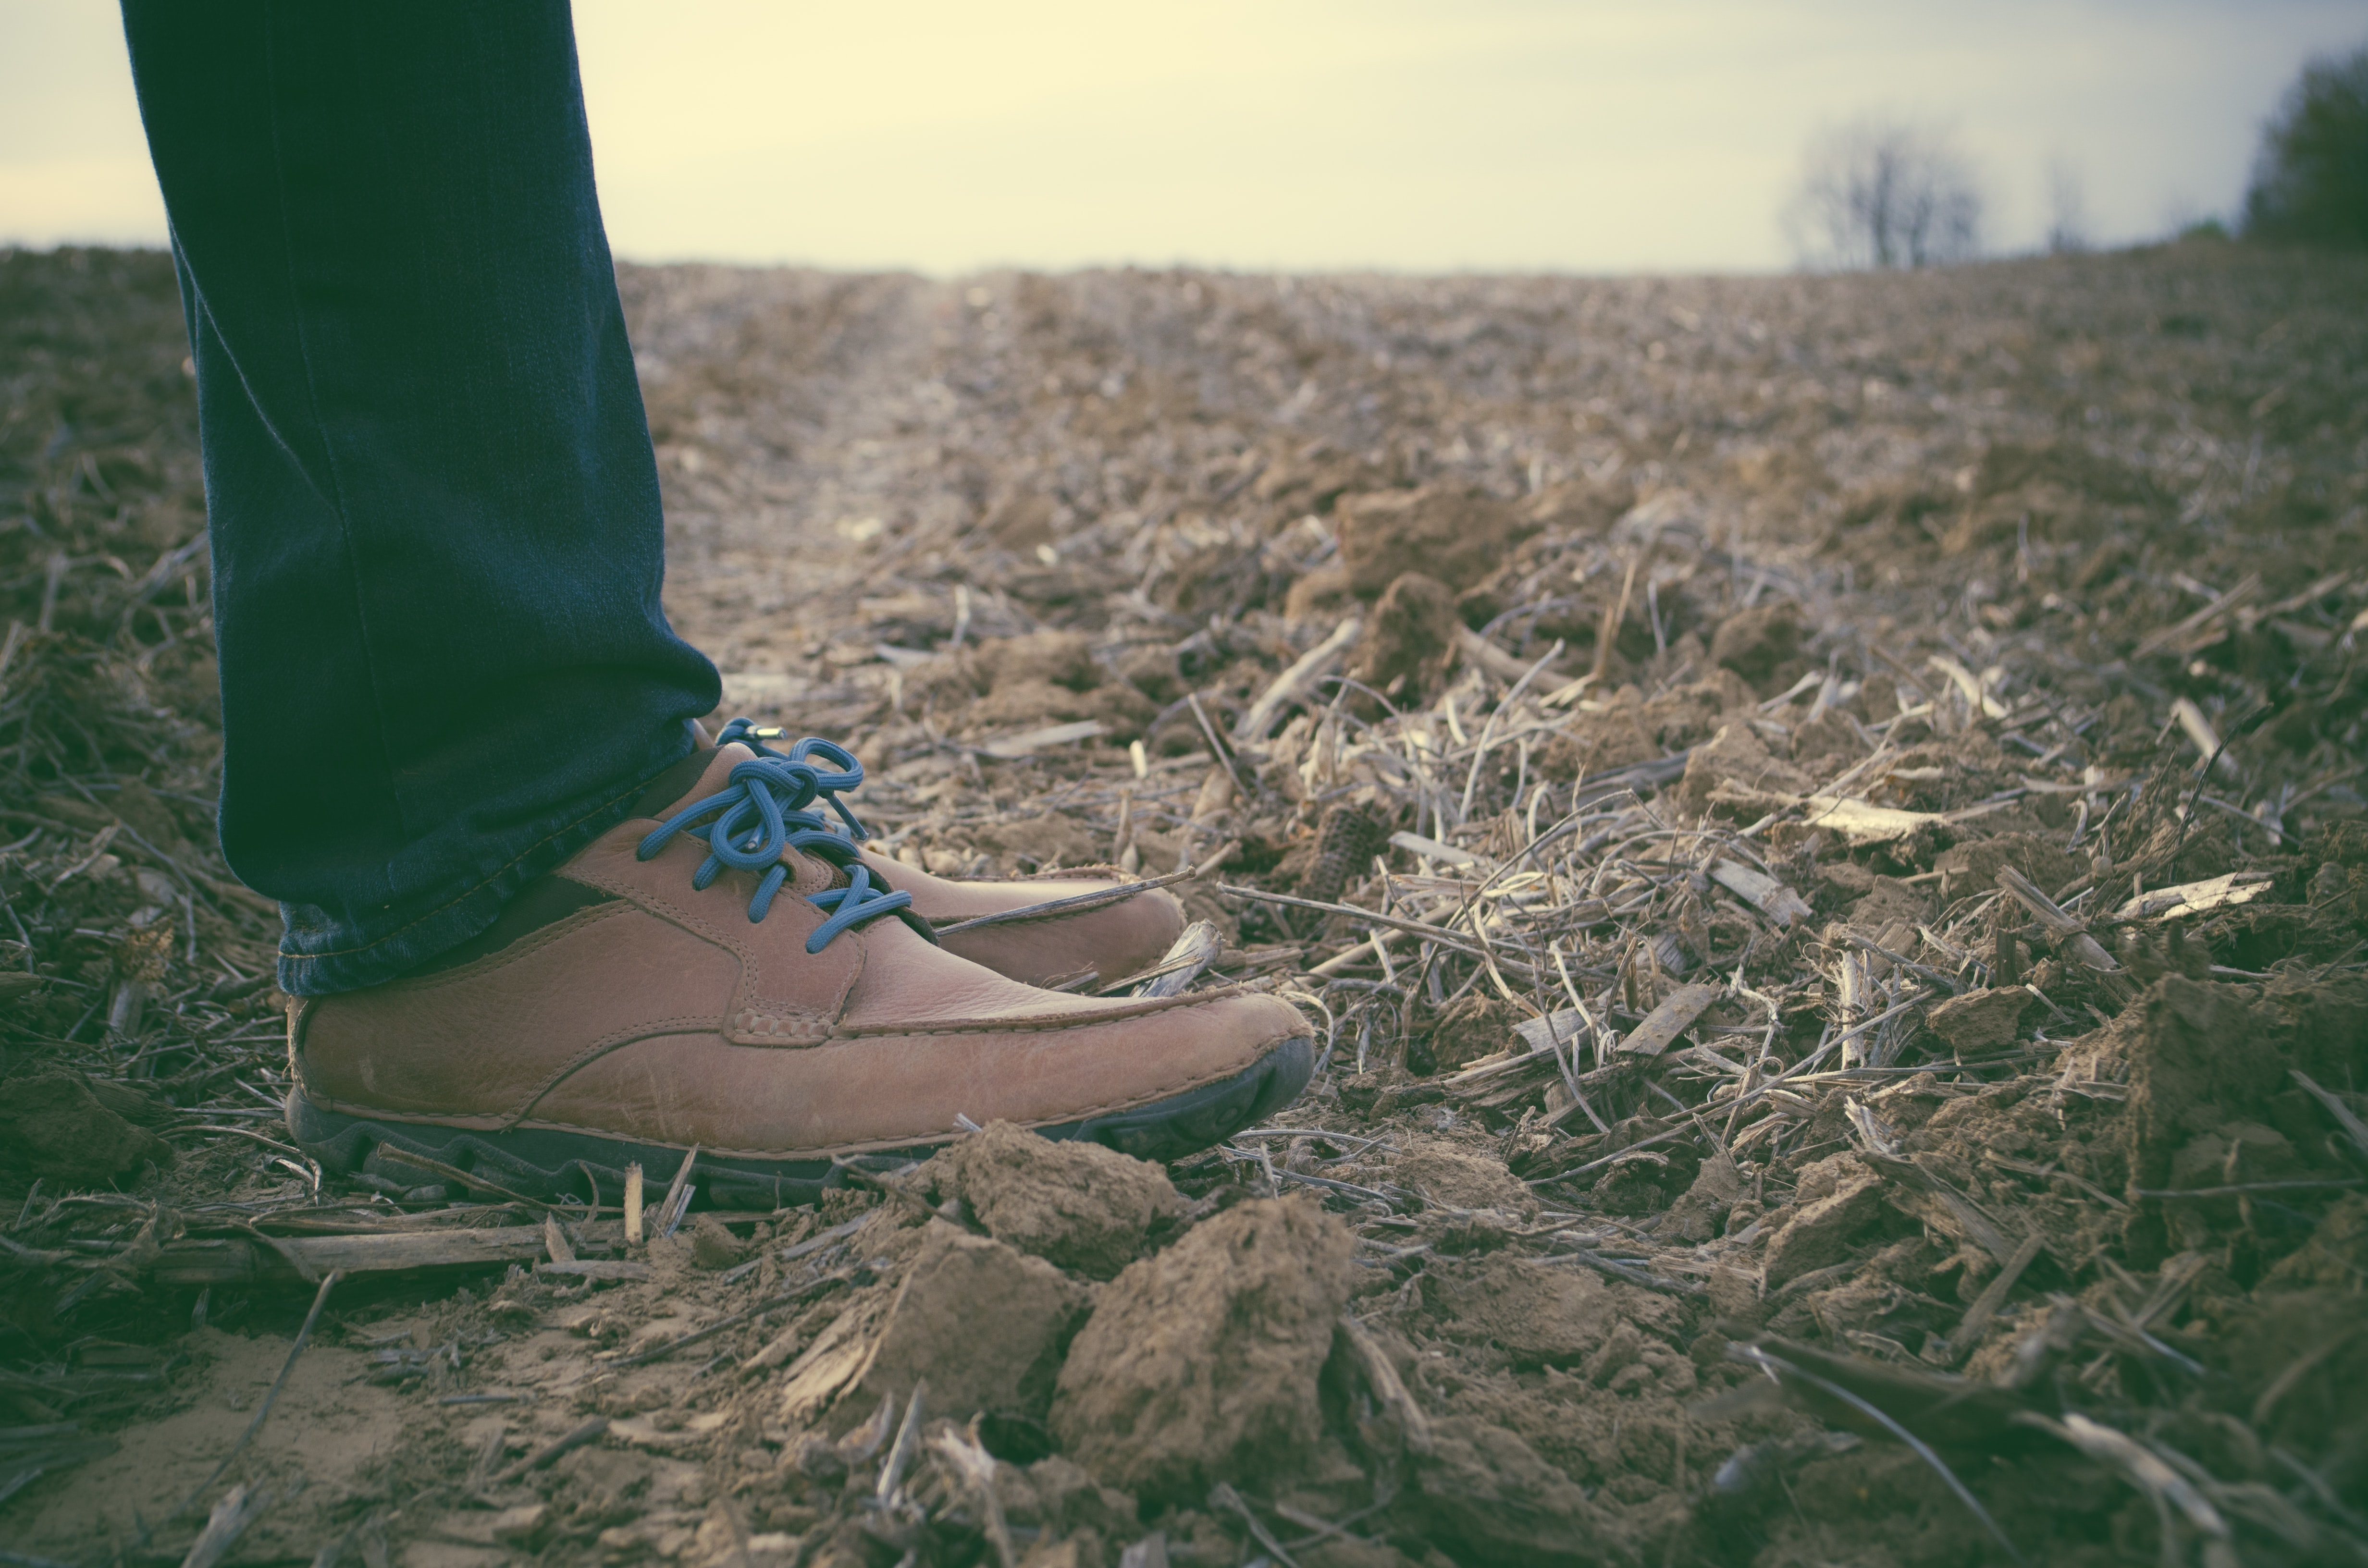 Low shot of person standing in a desolate farm field in brown shoes